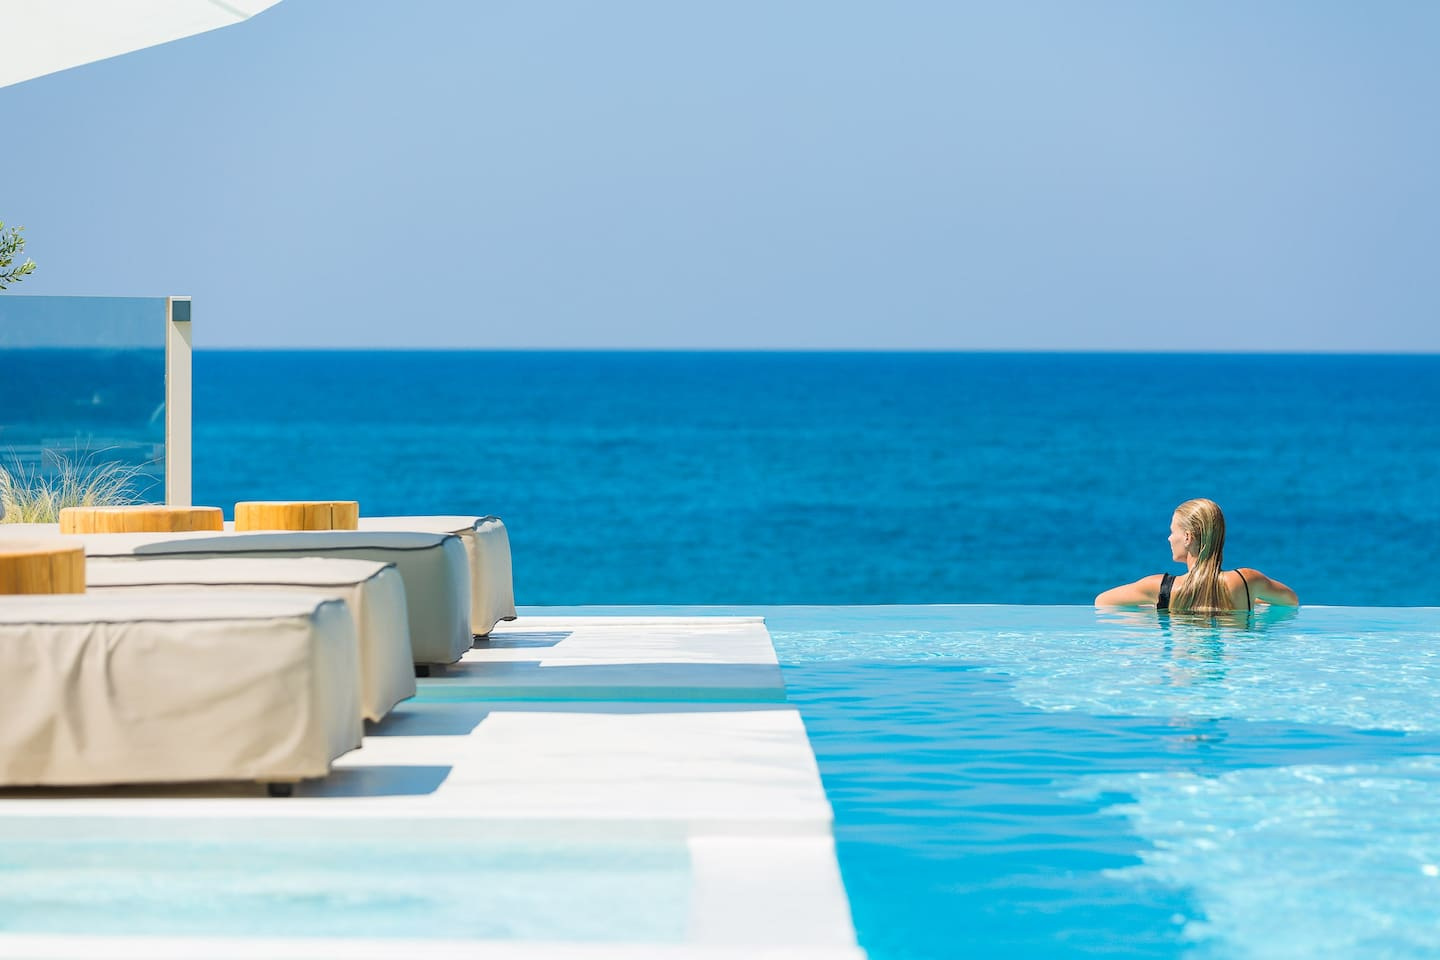 La Casa di Mare does beach life at its very best - a haven for fun & relaxation!